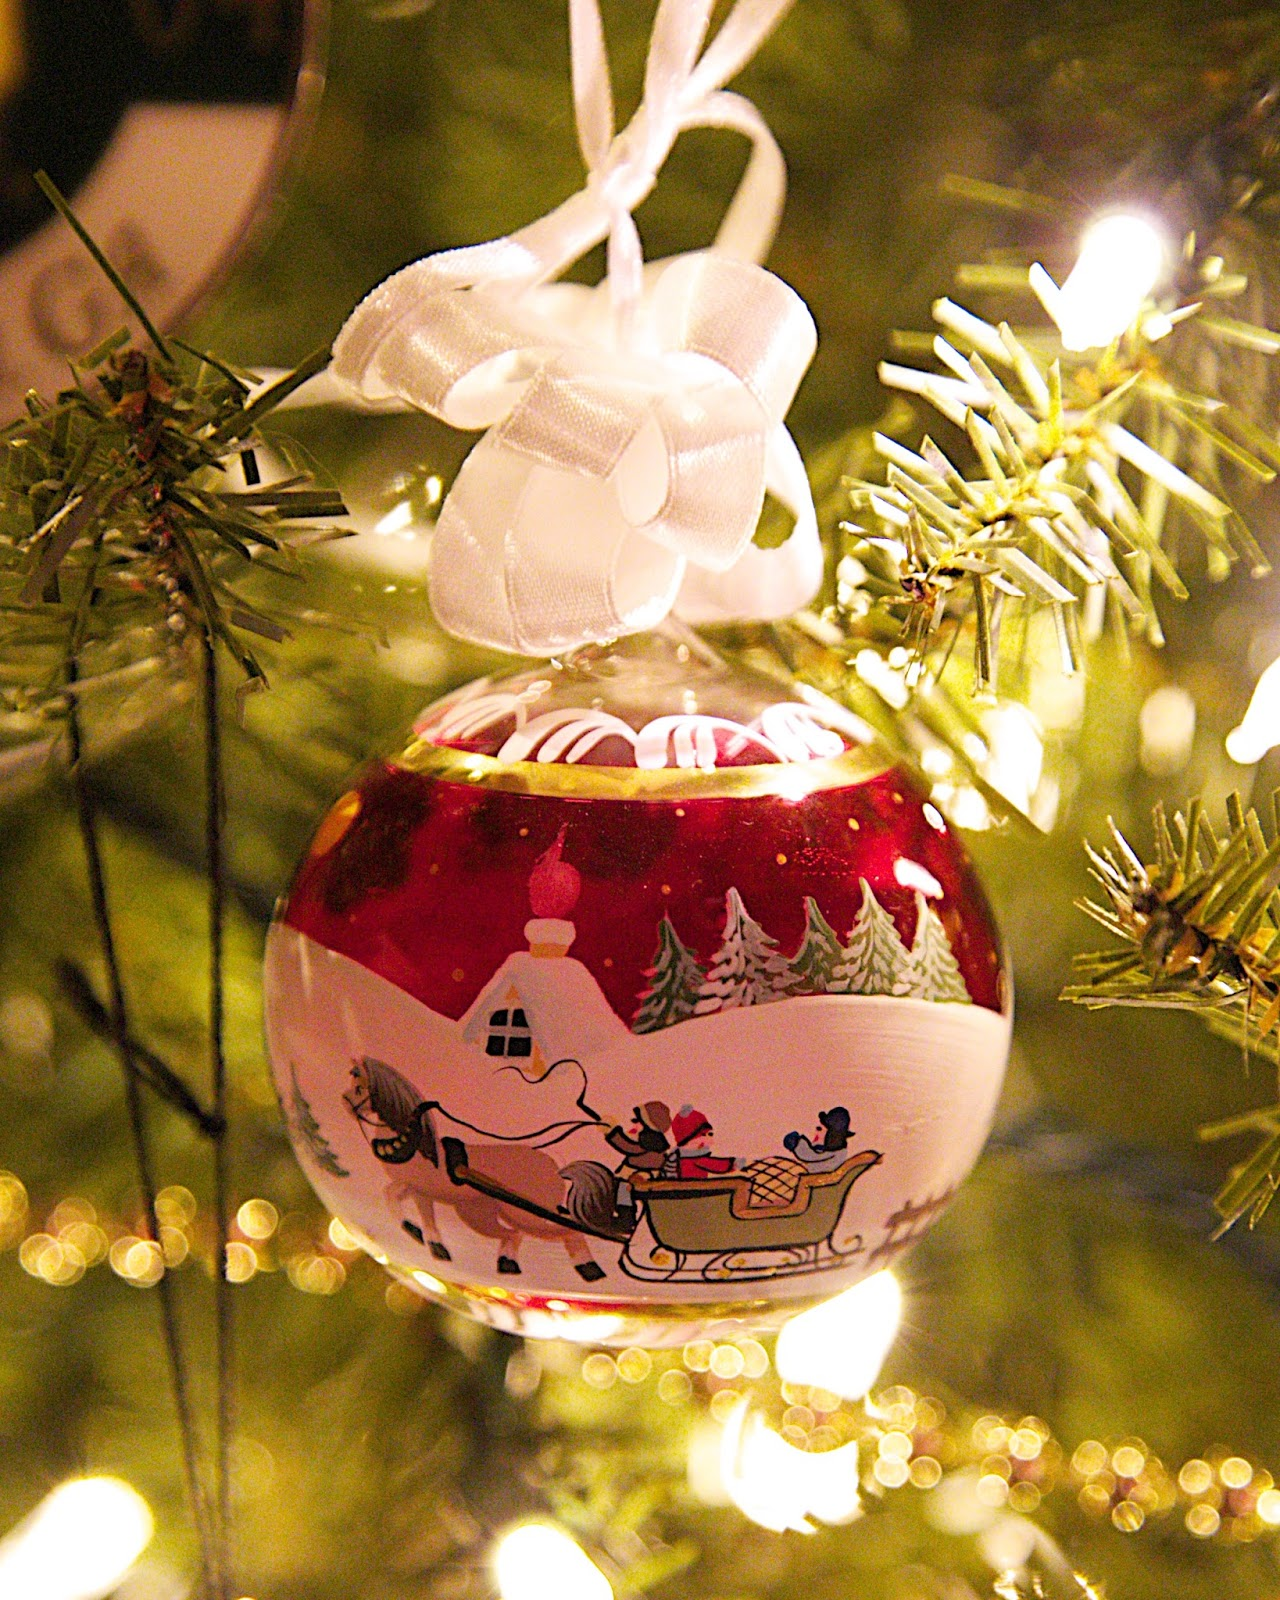 Hand Blown and Hand Painted Glass Ornament from Salzburg